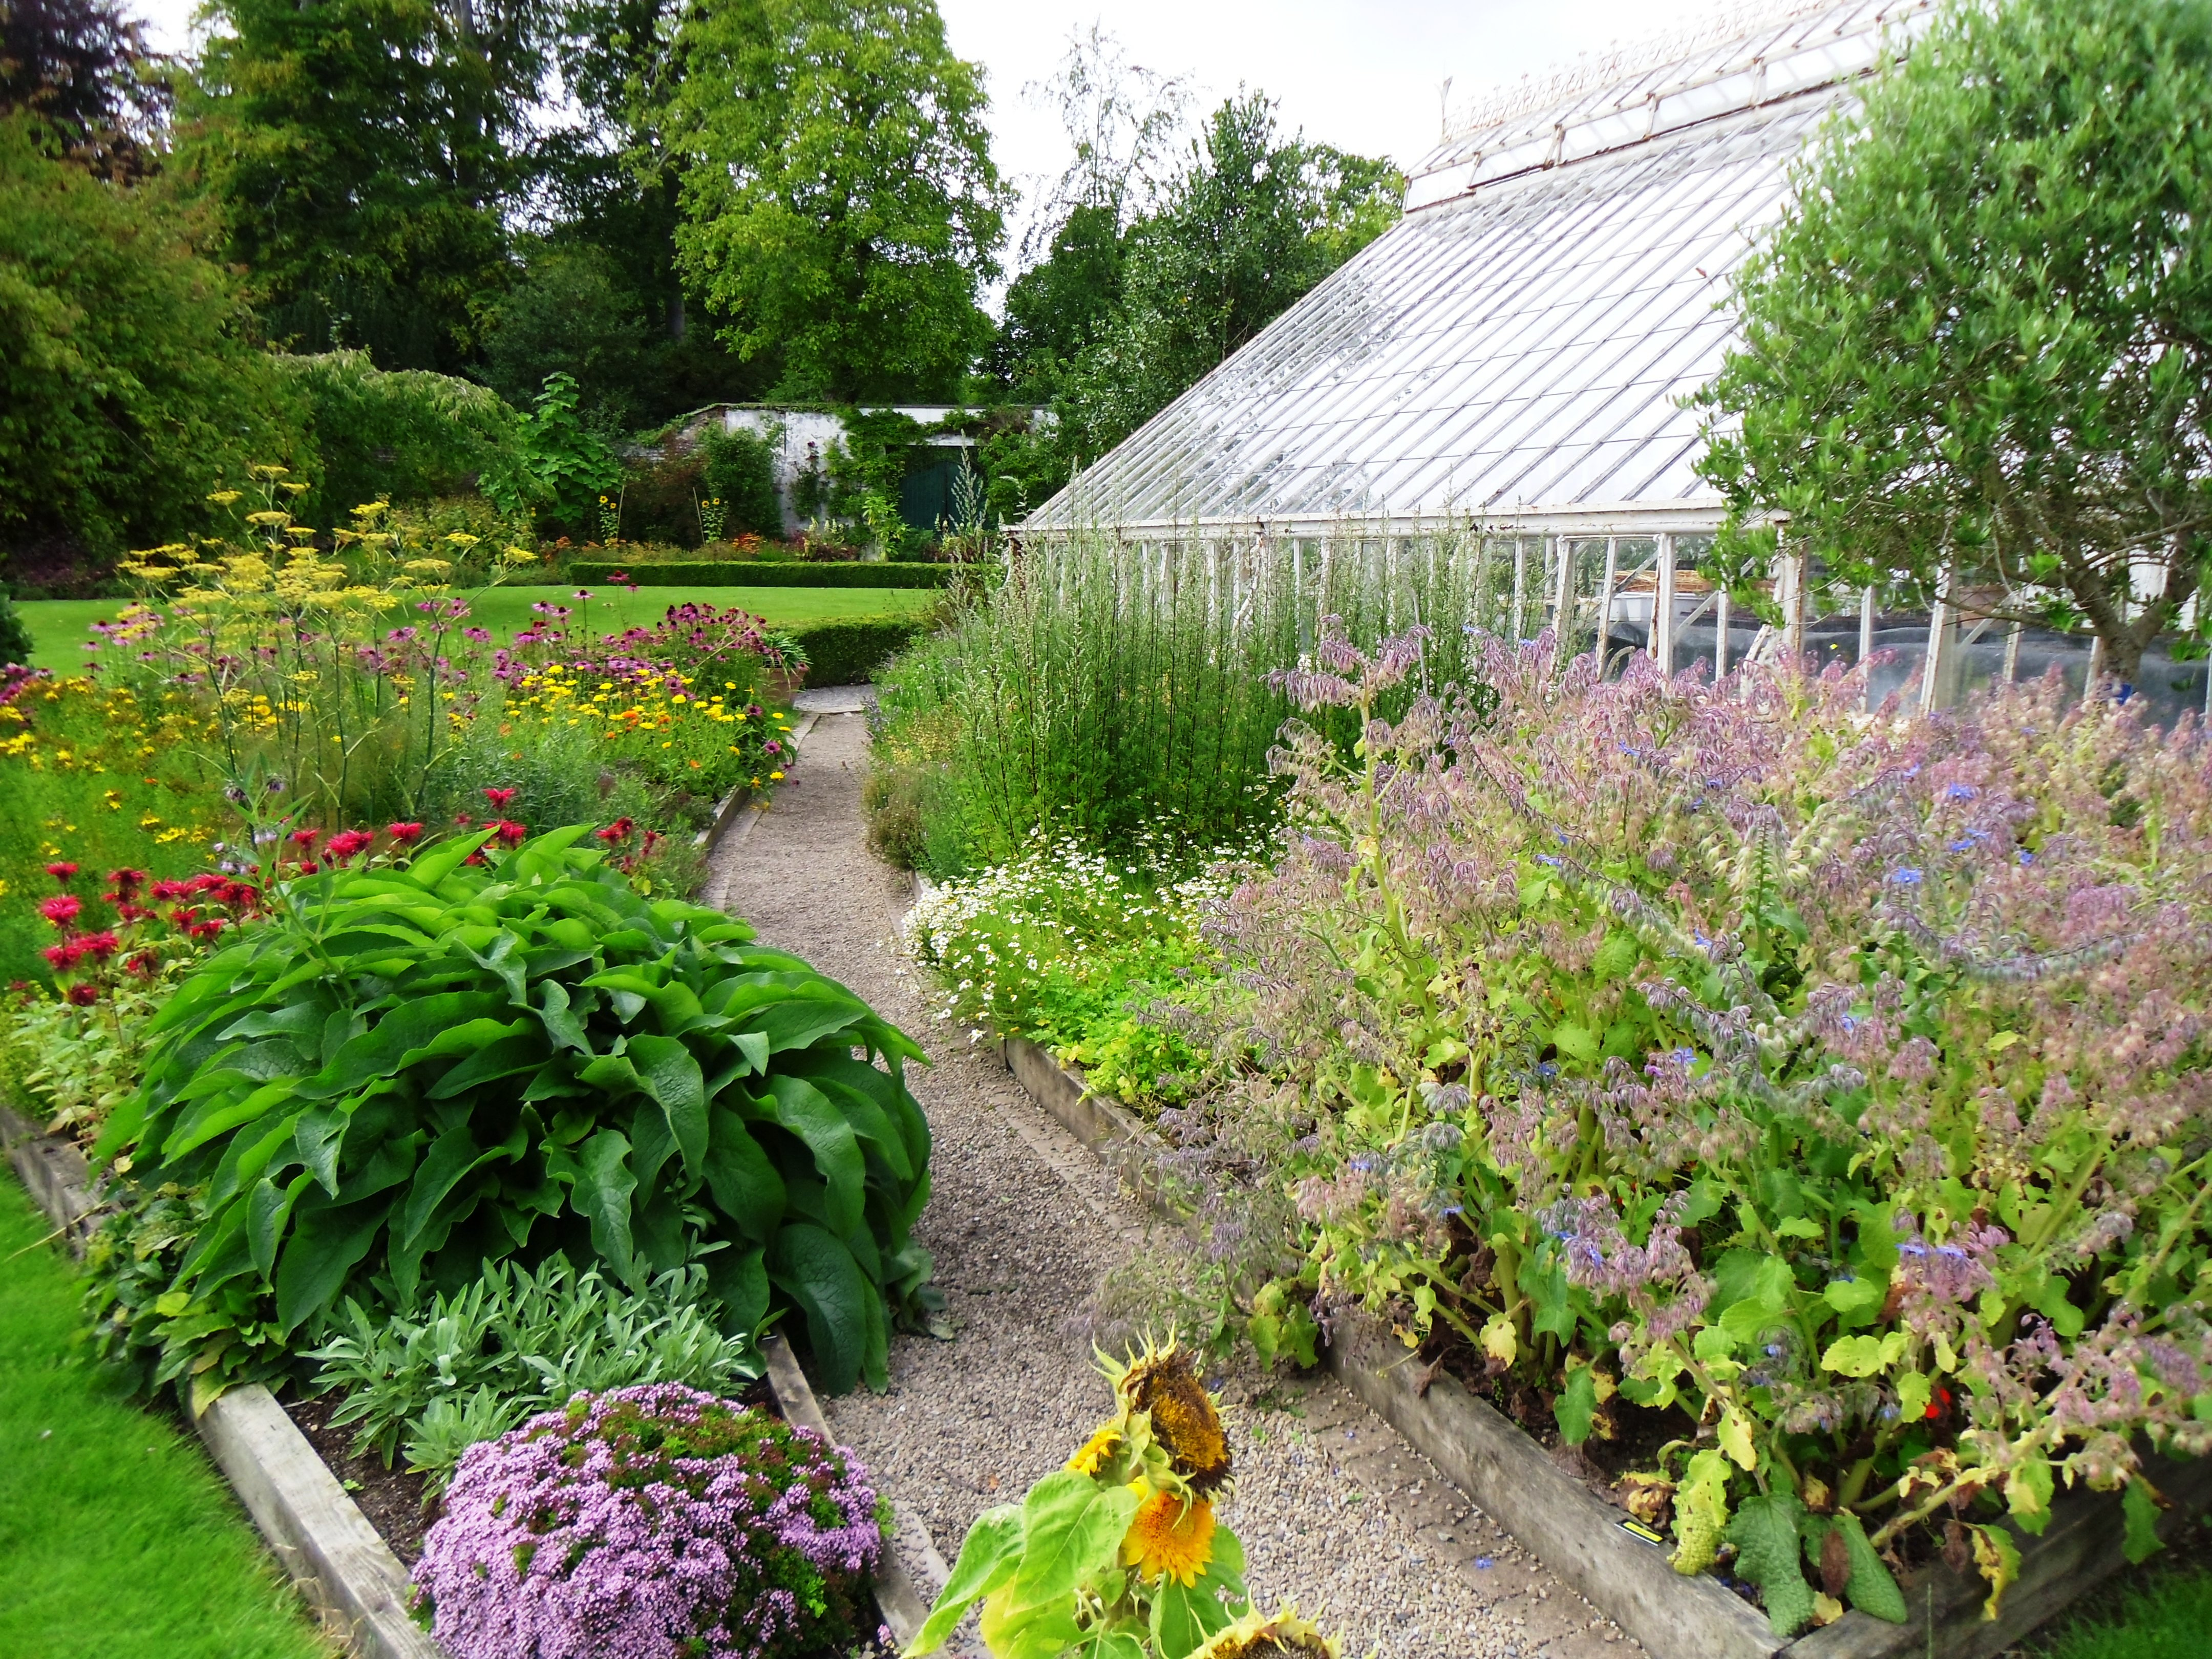 Herb garden in farmleigh house walled garden tim austen for Garden designs images pictures